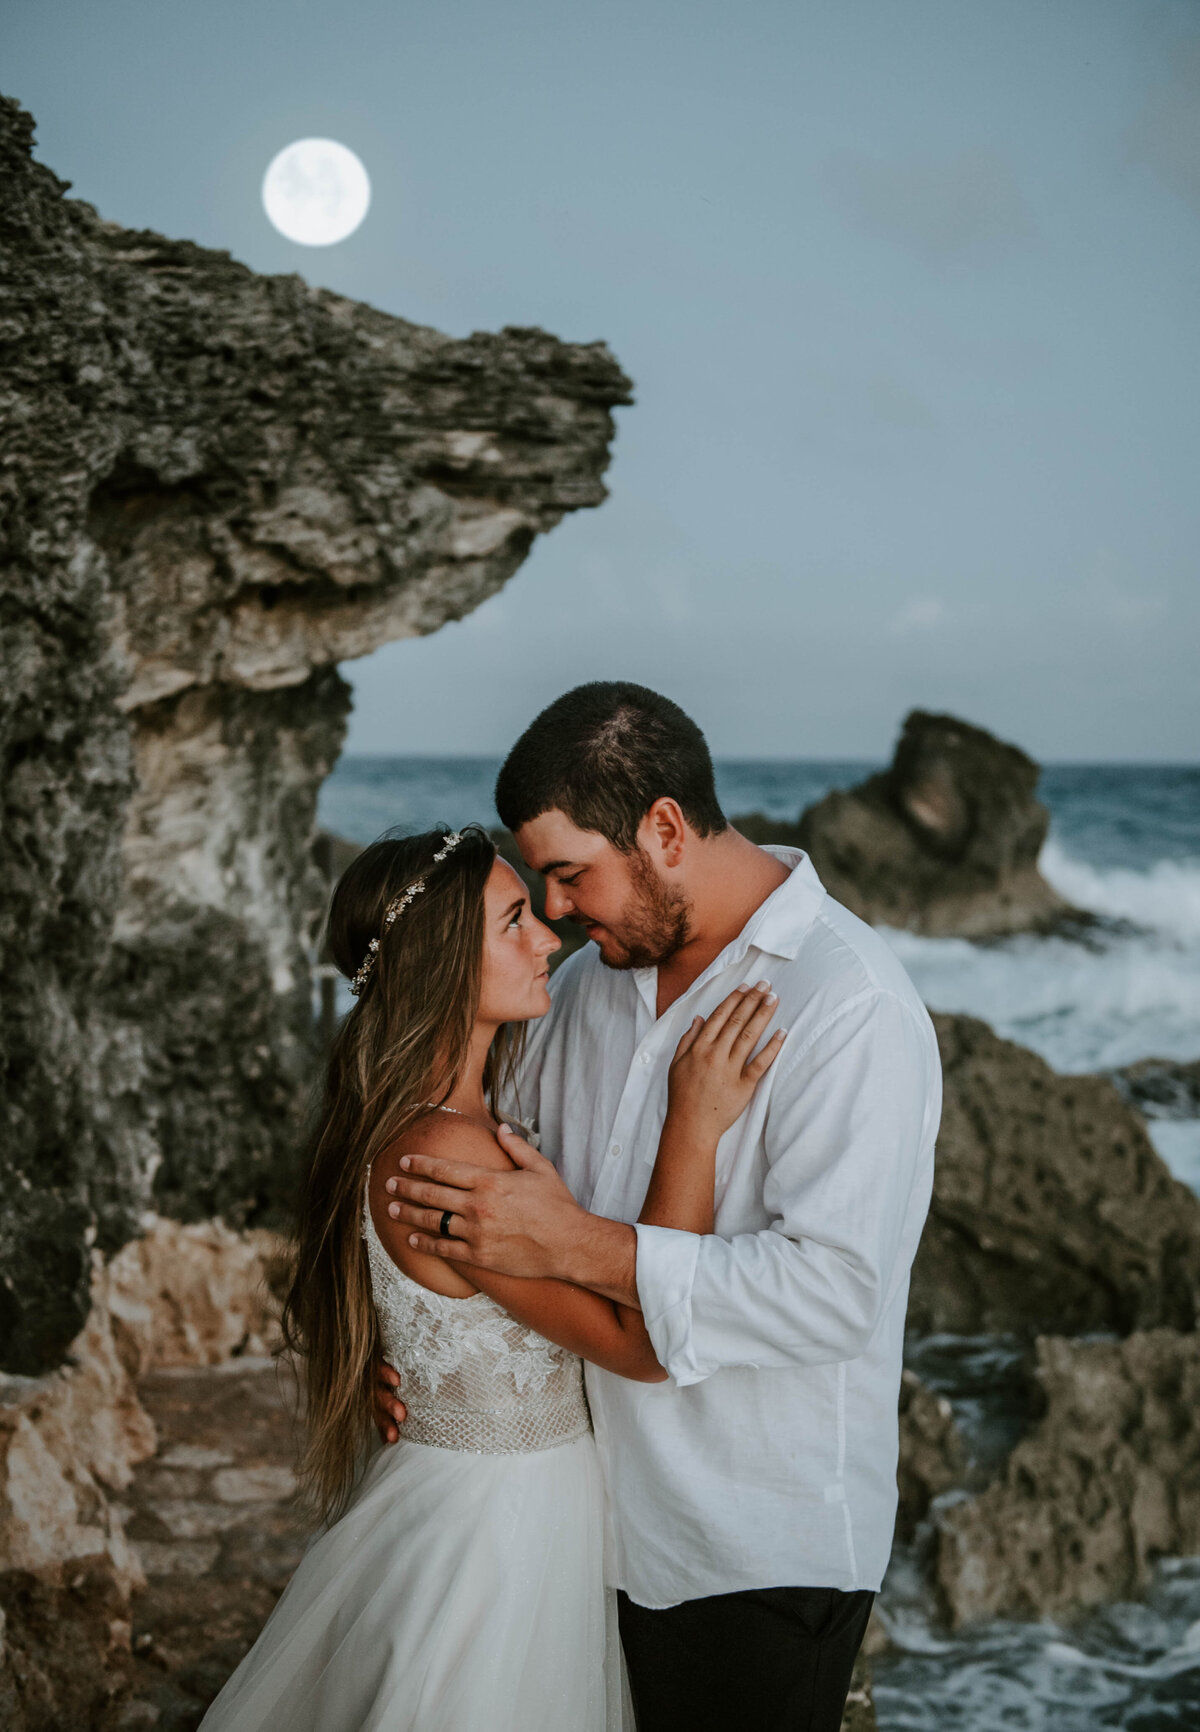 isla-mujeres-wedding-photographer-guthrie-zama-mexico-tulum-cancun-beach-destination-3754